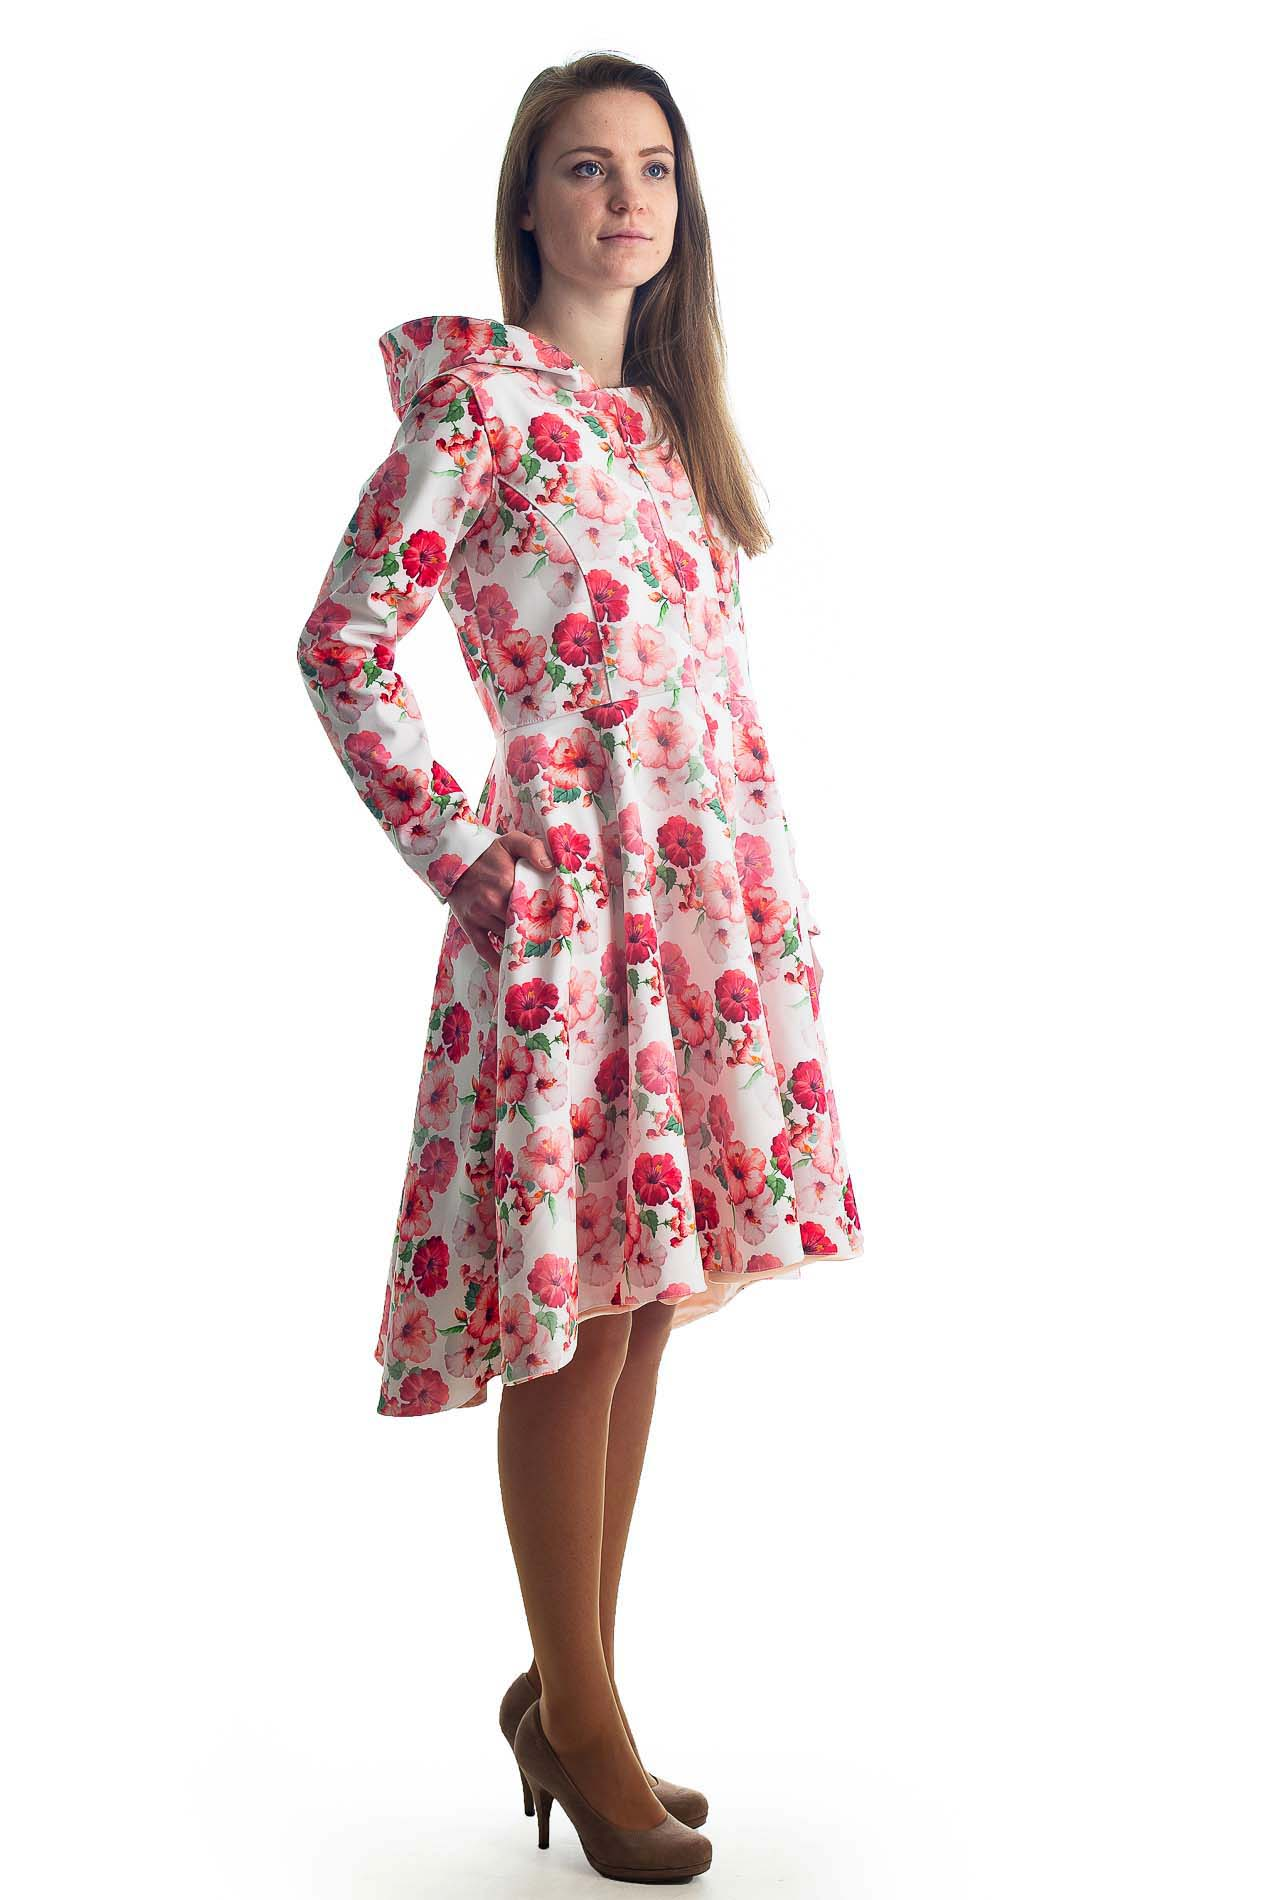 ... Buy online Red Floral Woman Raincoat City Sun by Rain Sisters ... 0dfe7cf34